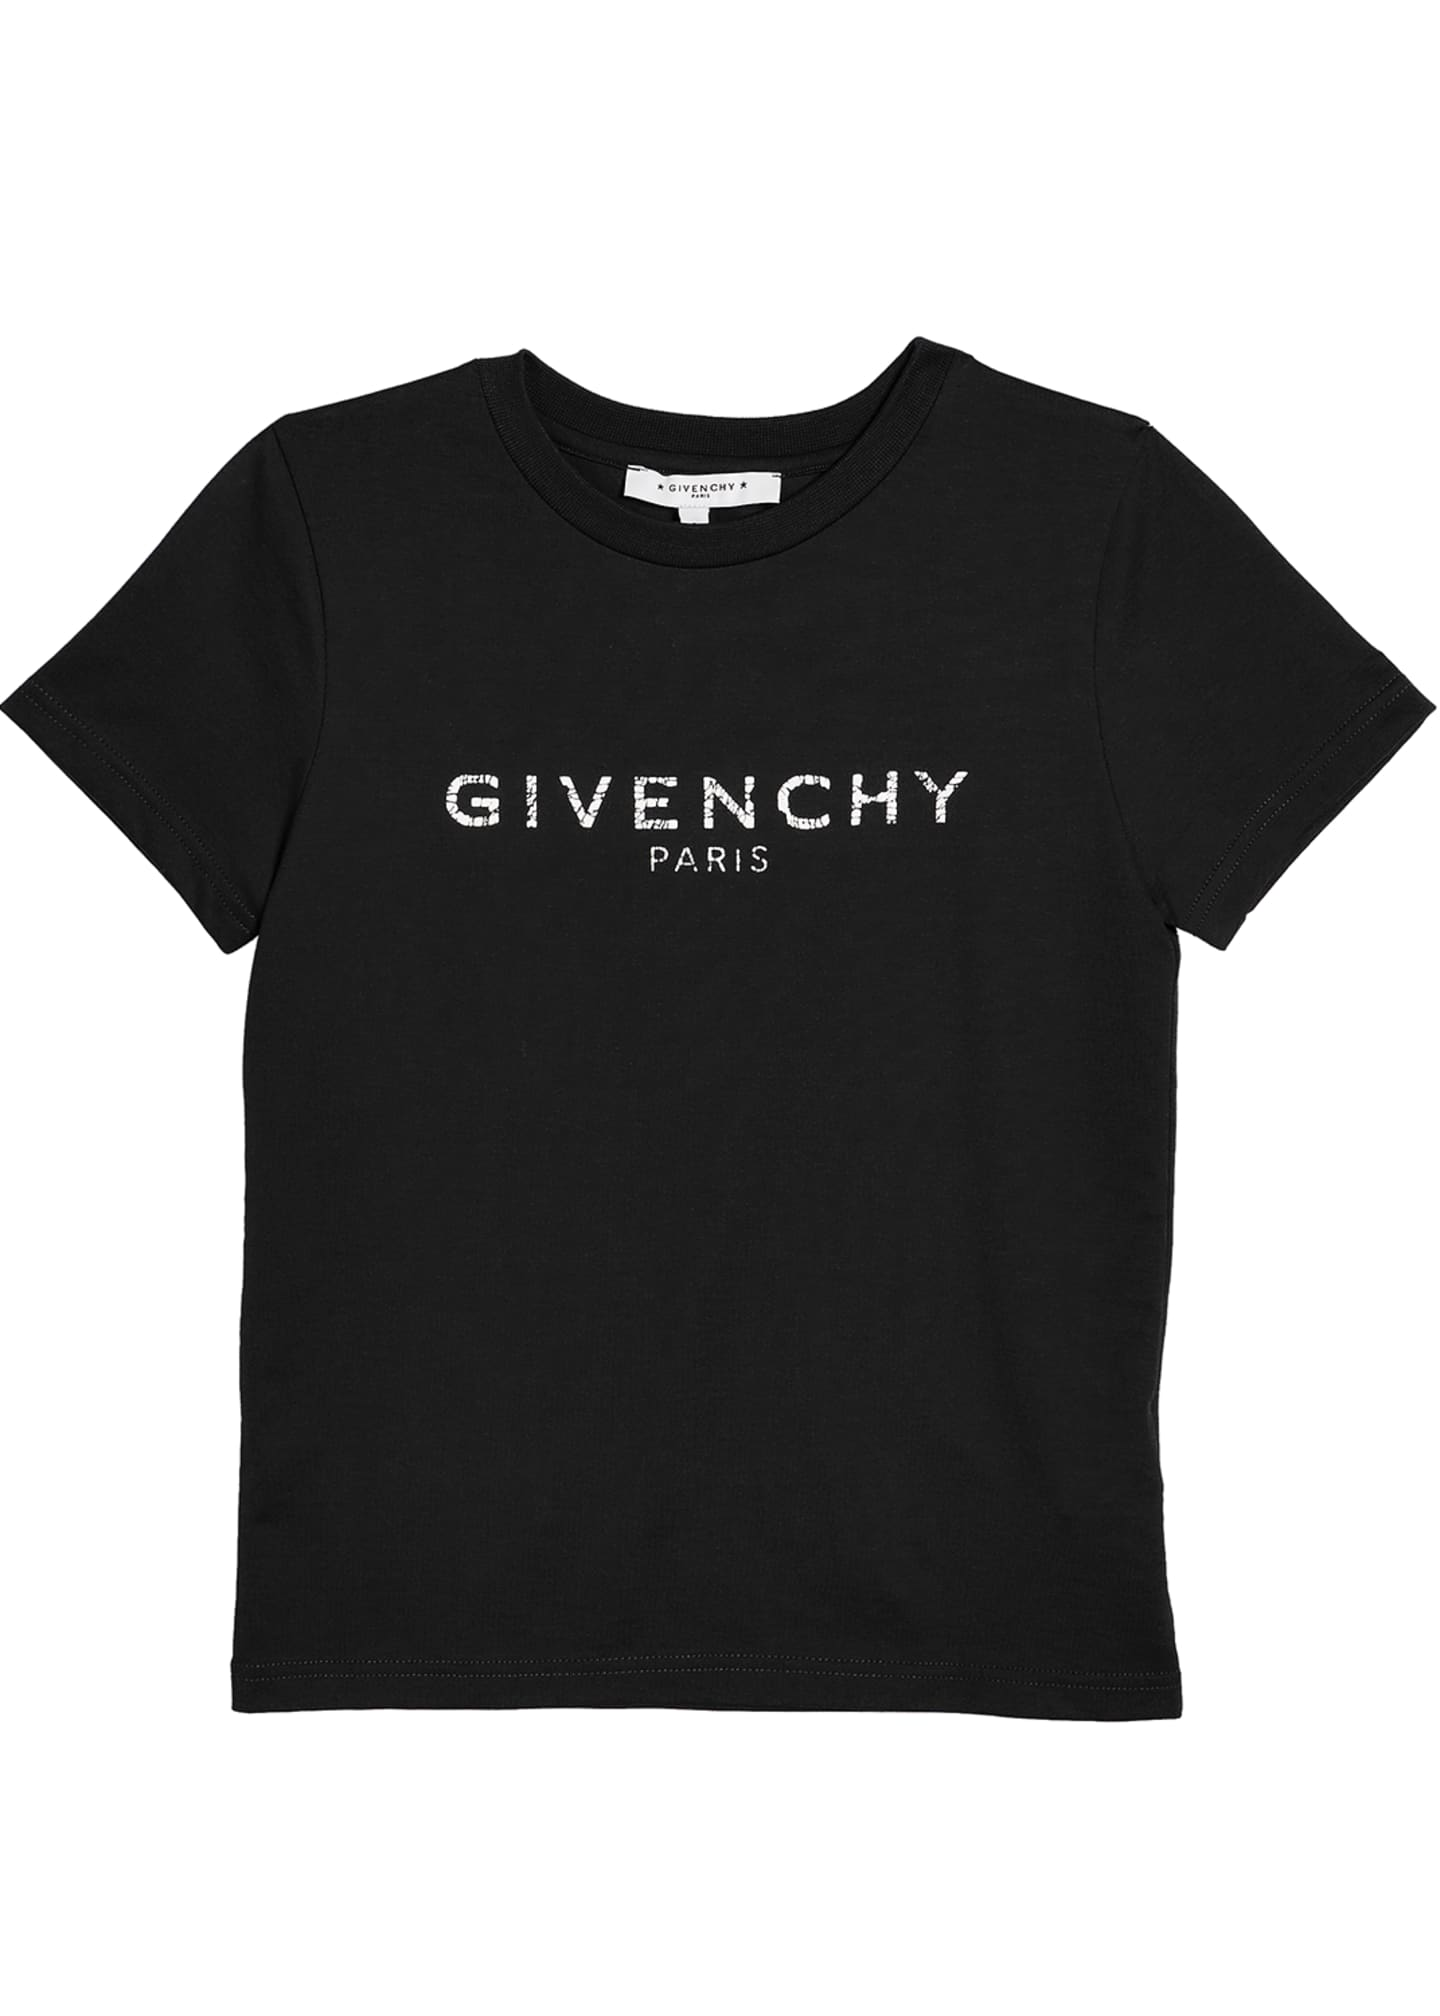 Givenchy Boy's Short-Sleeve Logo Tee, Size 4-10